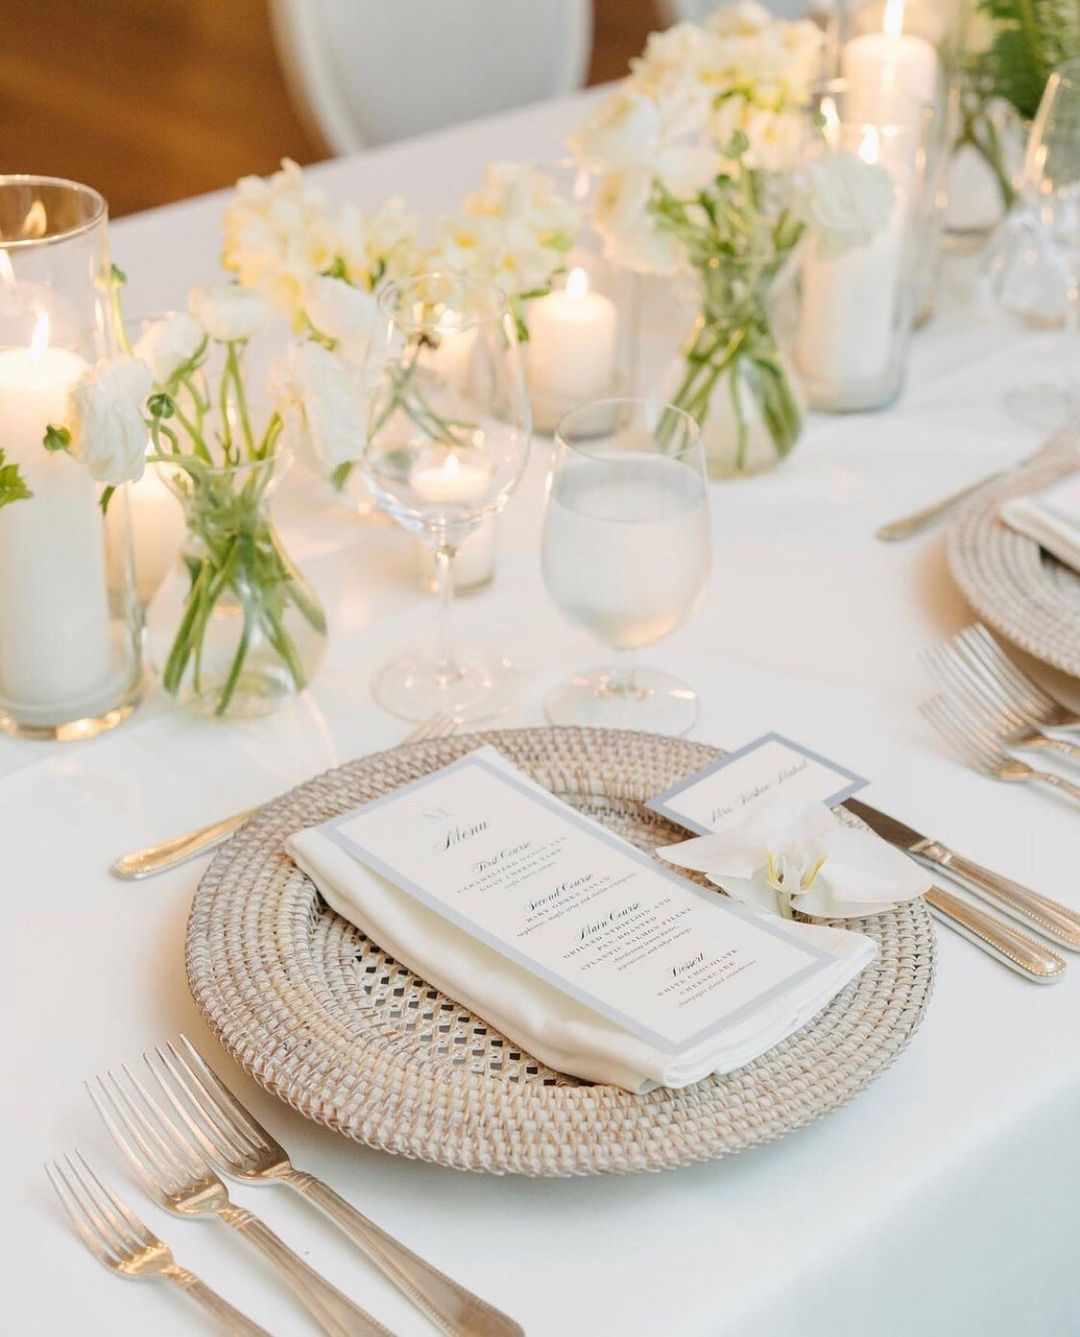 White Roses, White Candles, And Whicker Plates